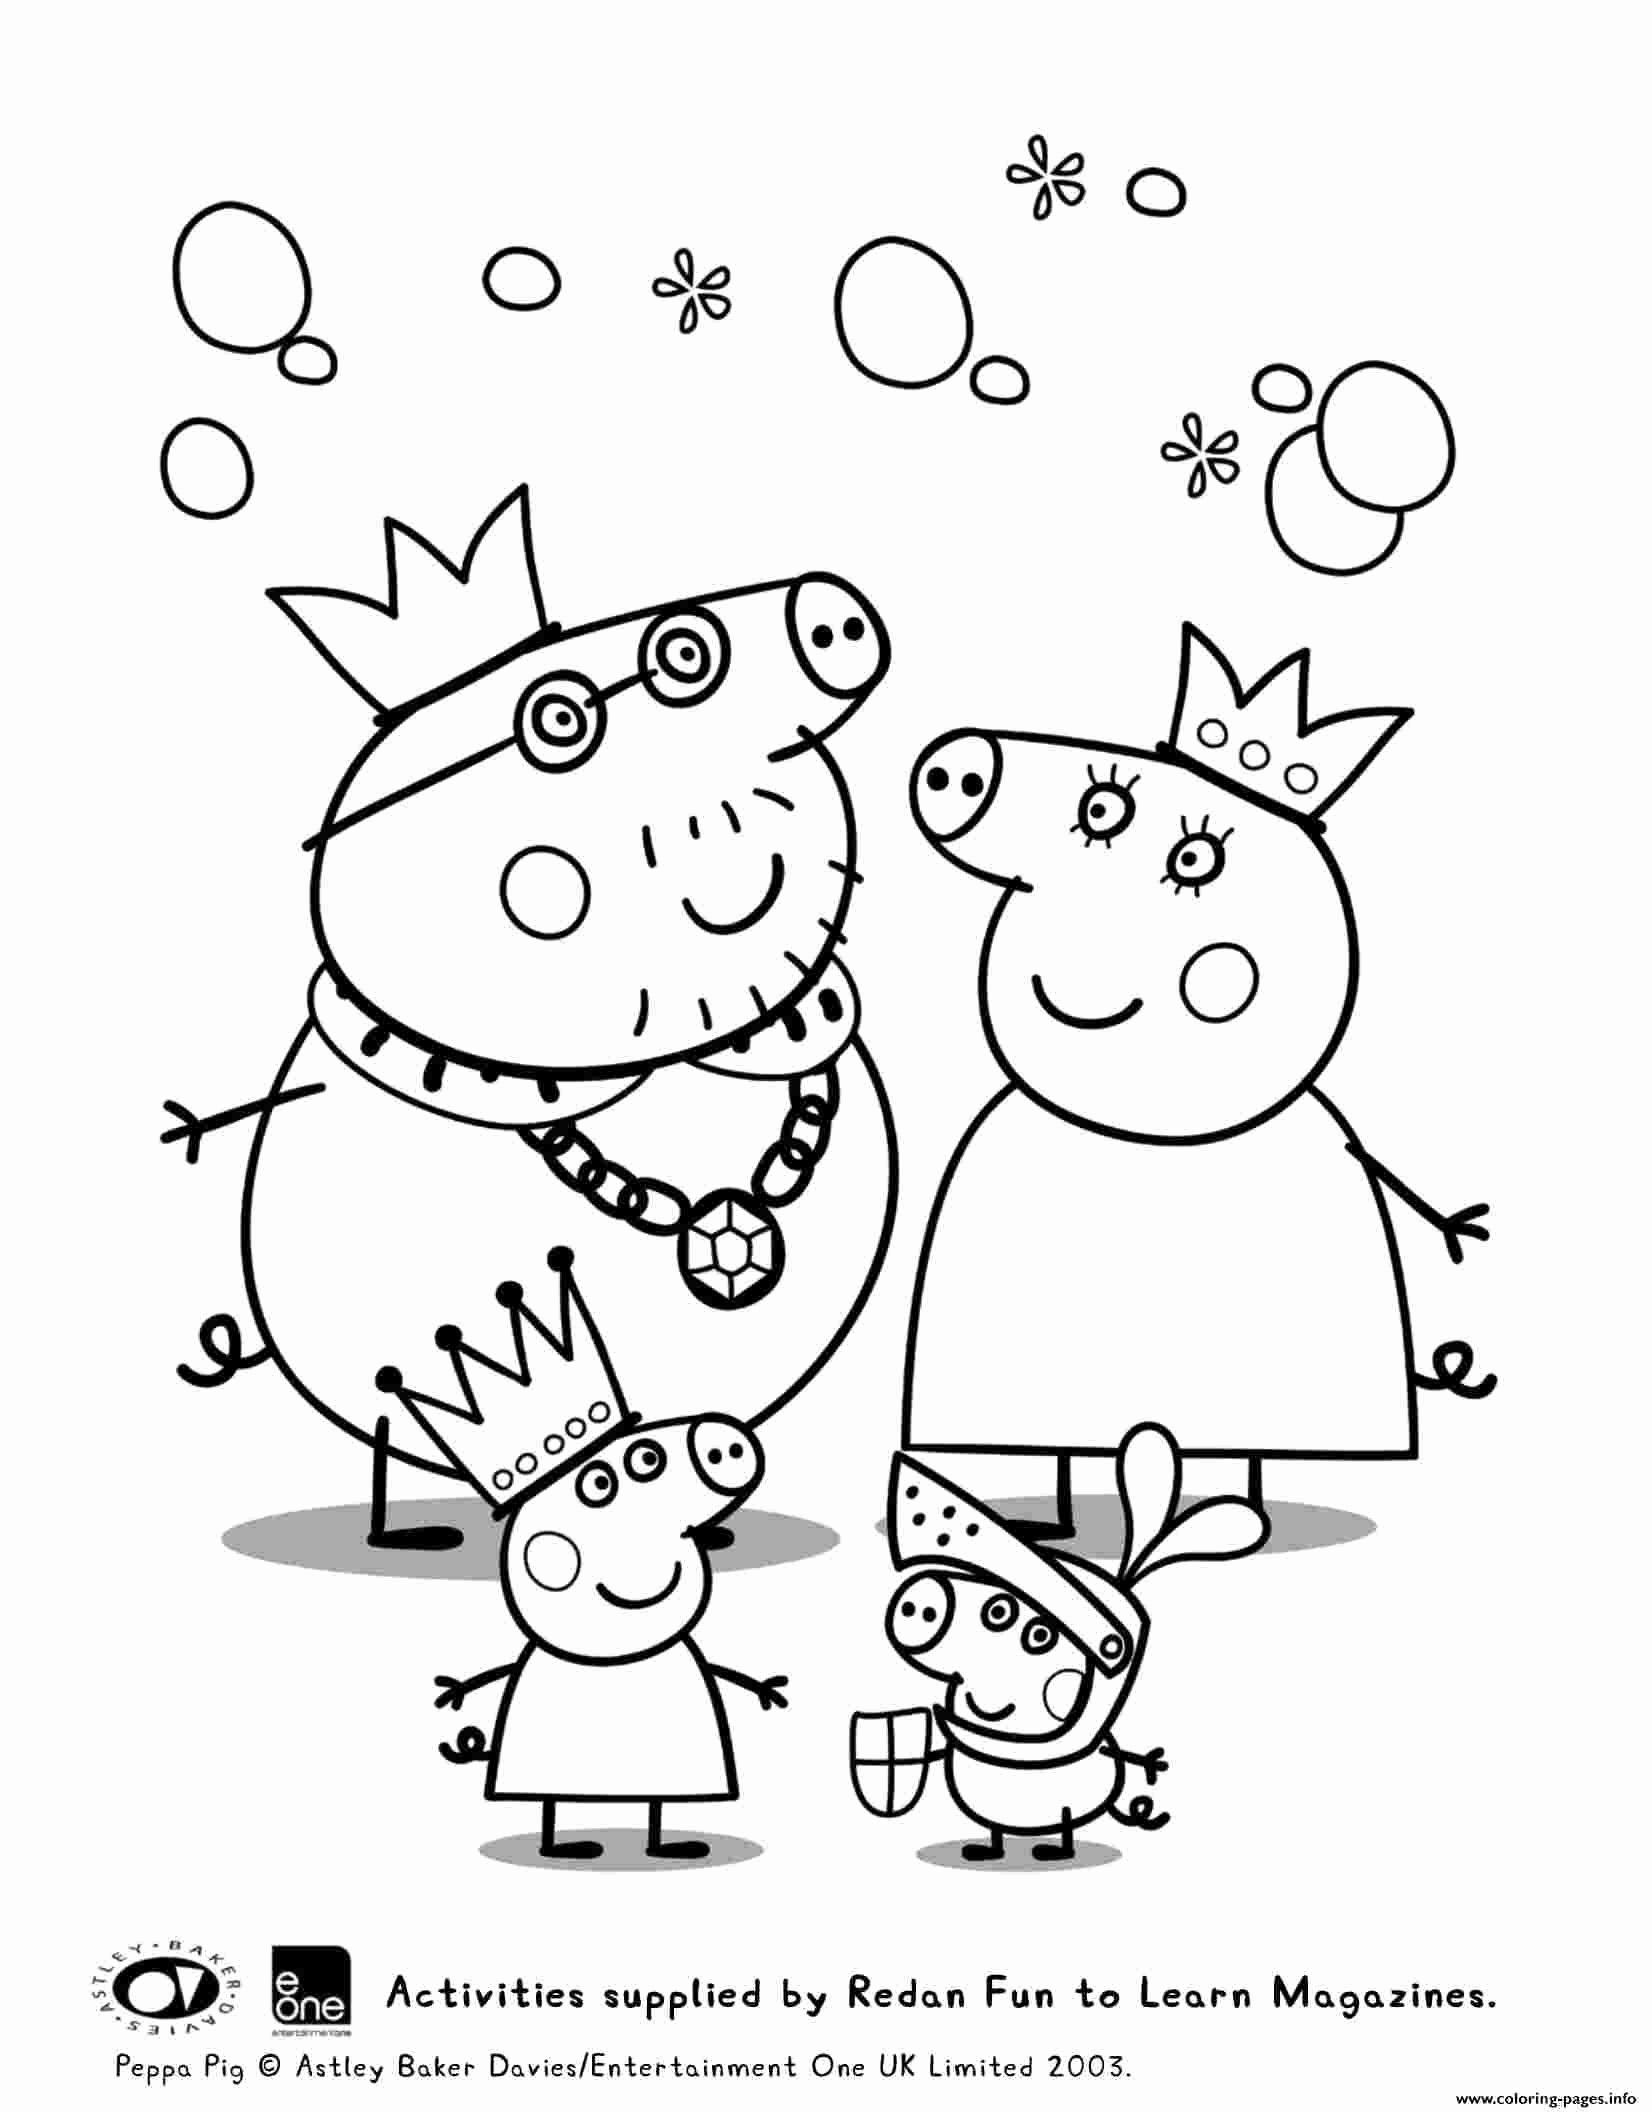 Halloween Coloring Pages Online Luxury Coloring Pages Peppa Halloween Coloring Peppa Pig Coloring Pages Halloween Coloring Pages Free Halloween Coloring Pages